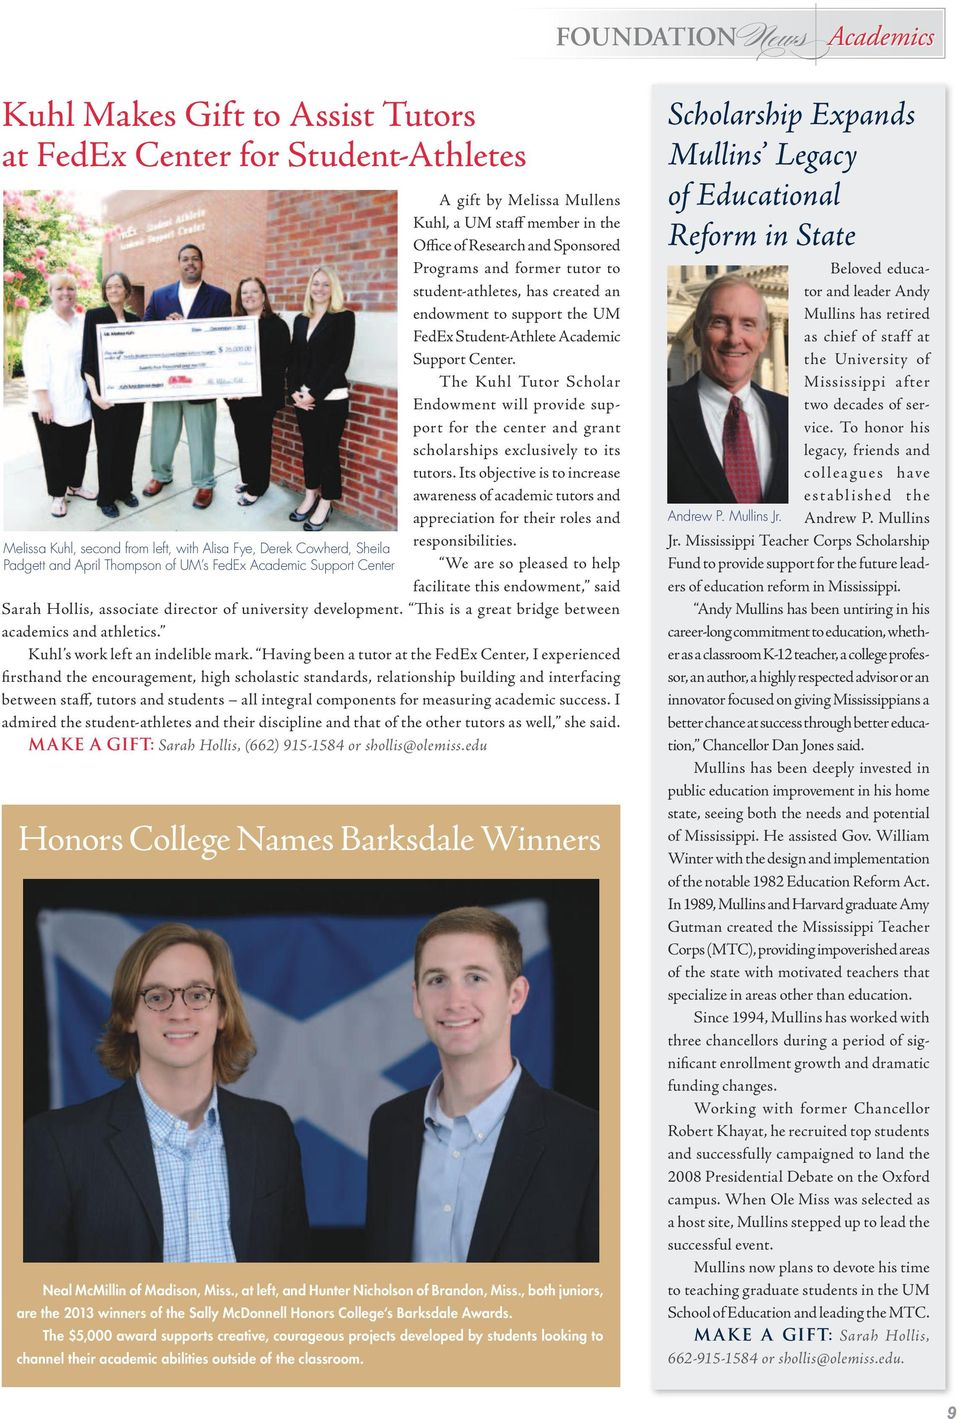 , both juniors, are the 2013 winners of the Sally McDonnell Honors College s Barksdale Awards.